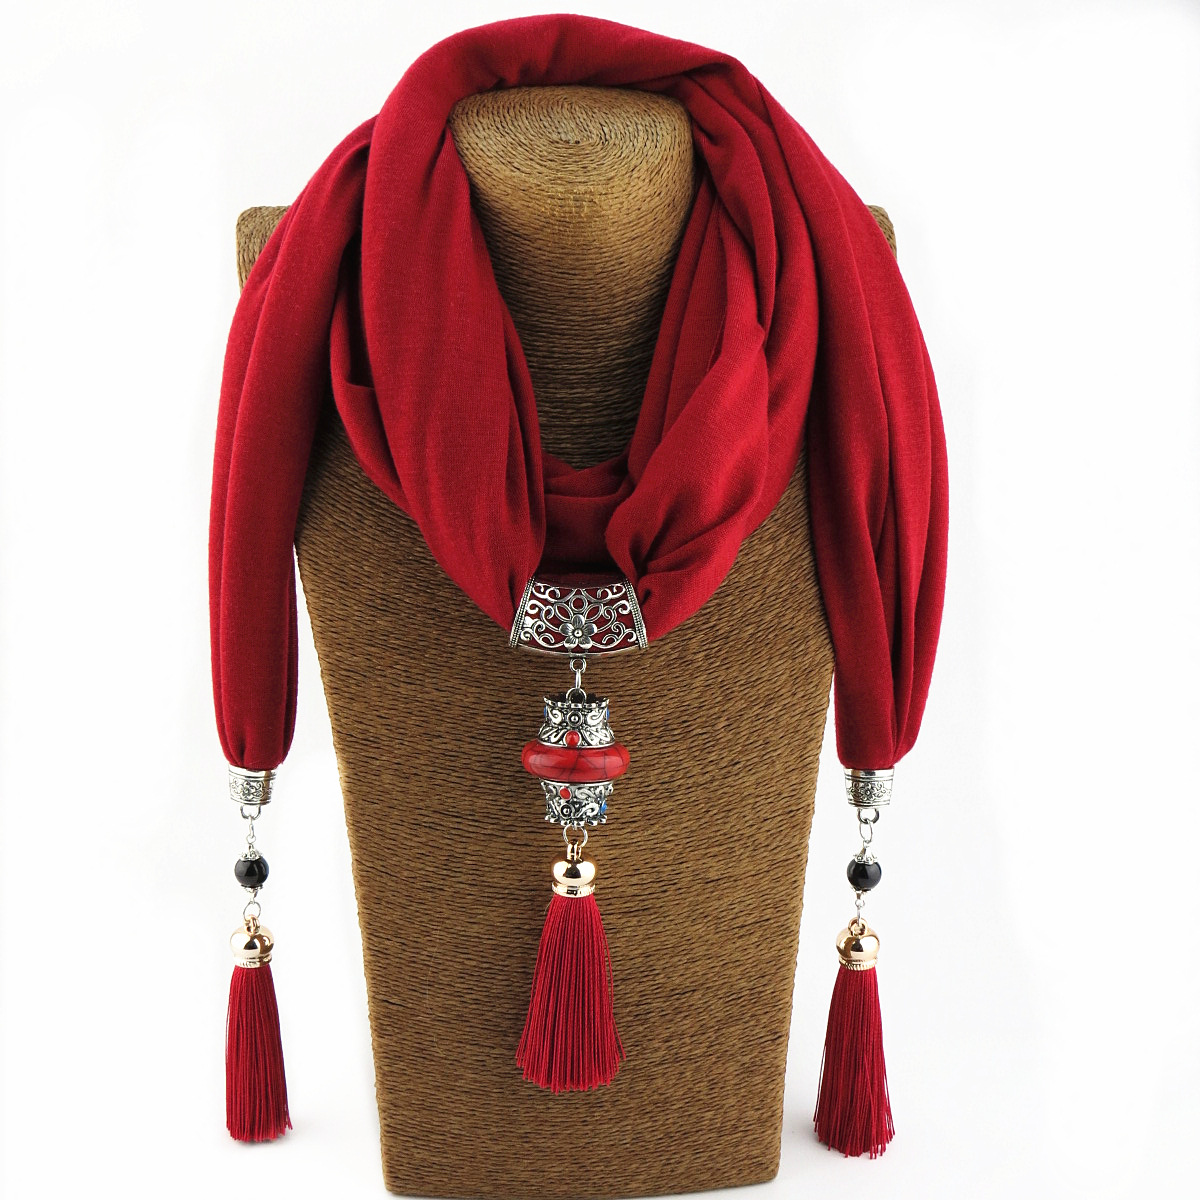 New Style Ceramic Beads Tassels Peacock Pendant Scarf WOMEN'S Shawl Scarf Accessories Necklace Ethnic-Style Scarf